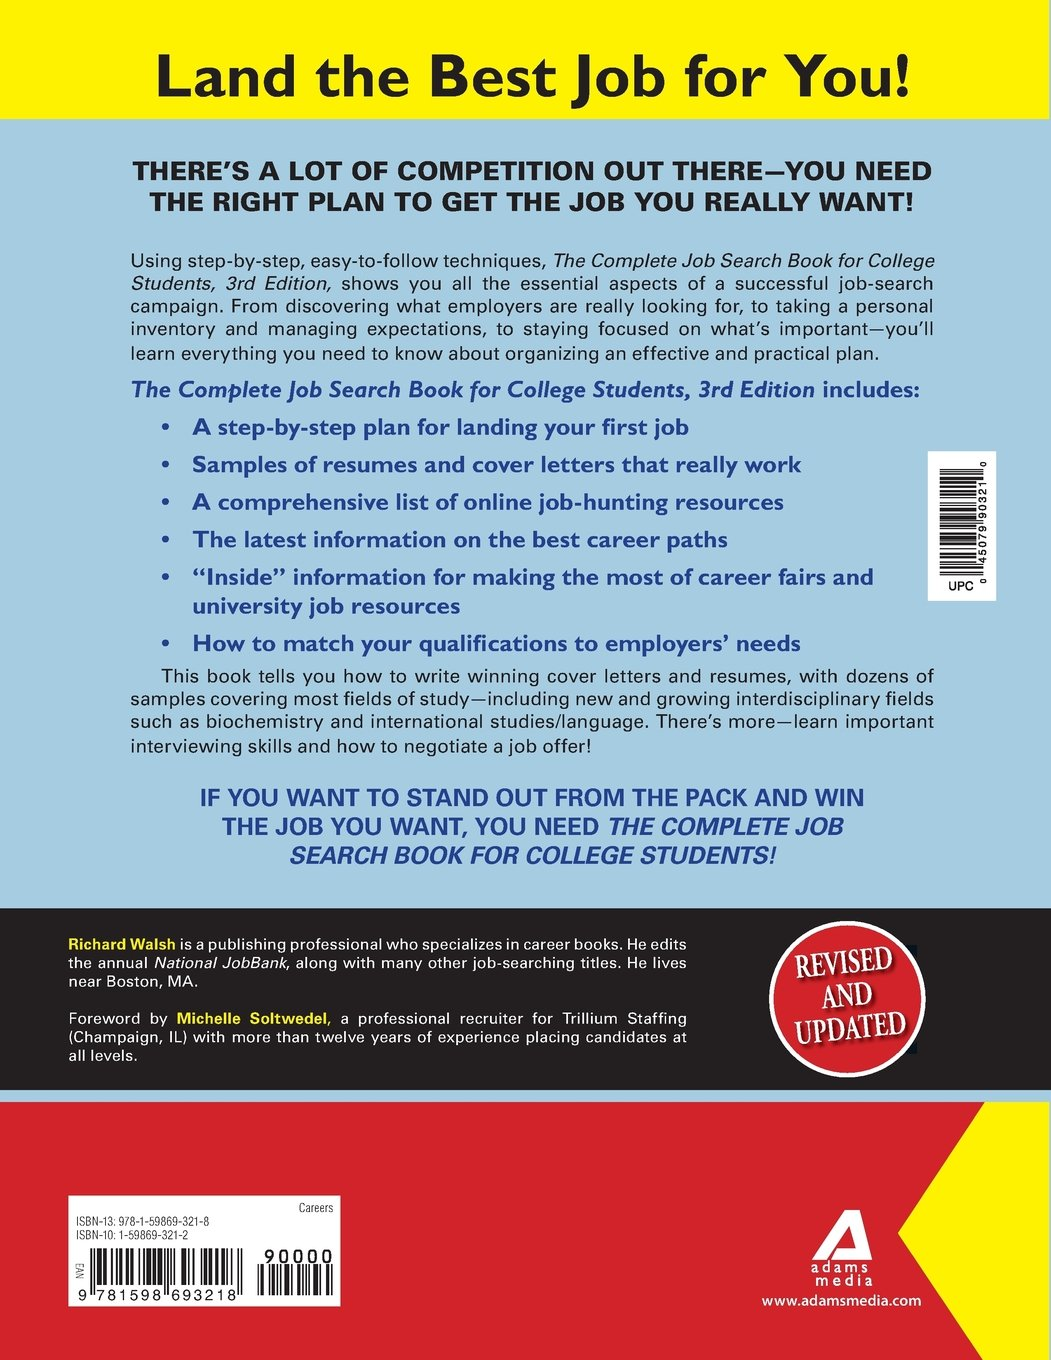 the complete job search book for college students a step by step the complete job search book for college students a step by step guide to finding the right job richard walsh michelle soltwedel 0045079903210